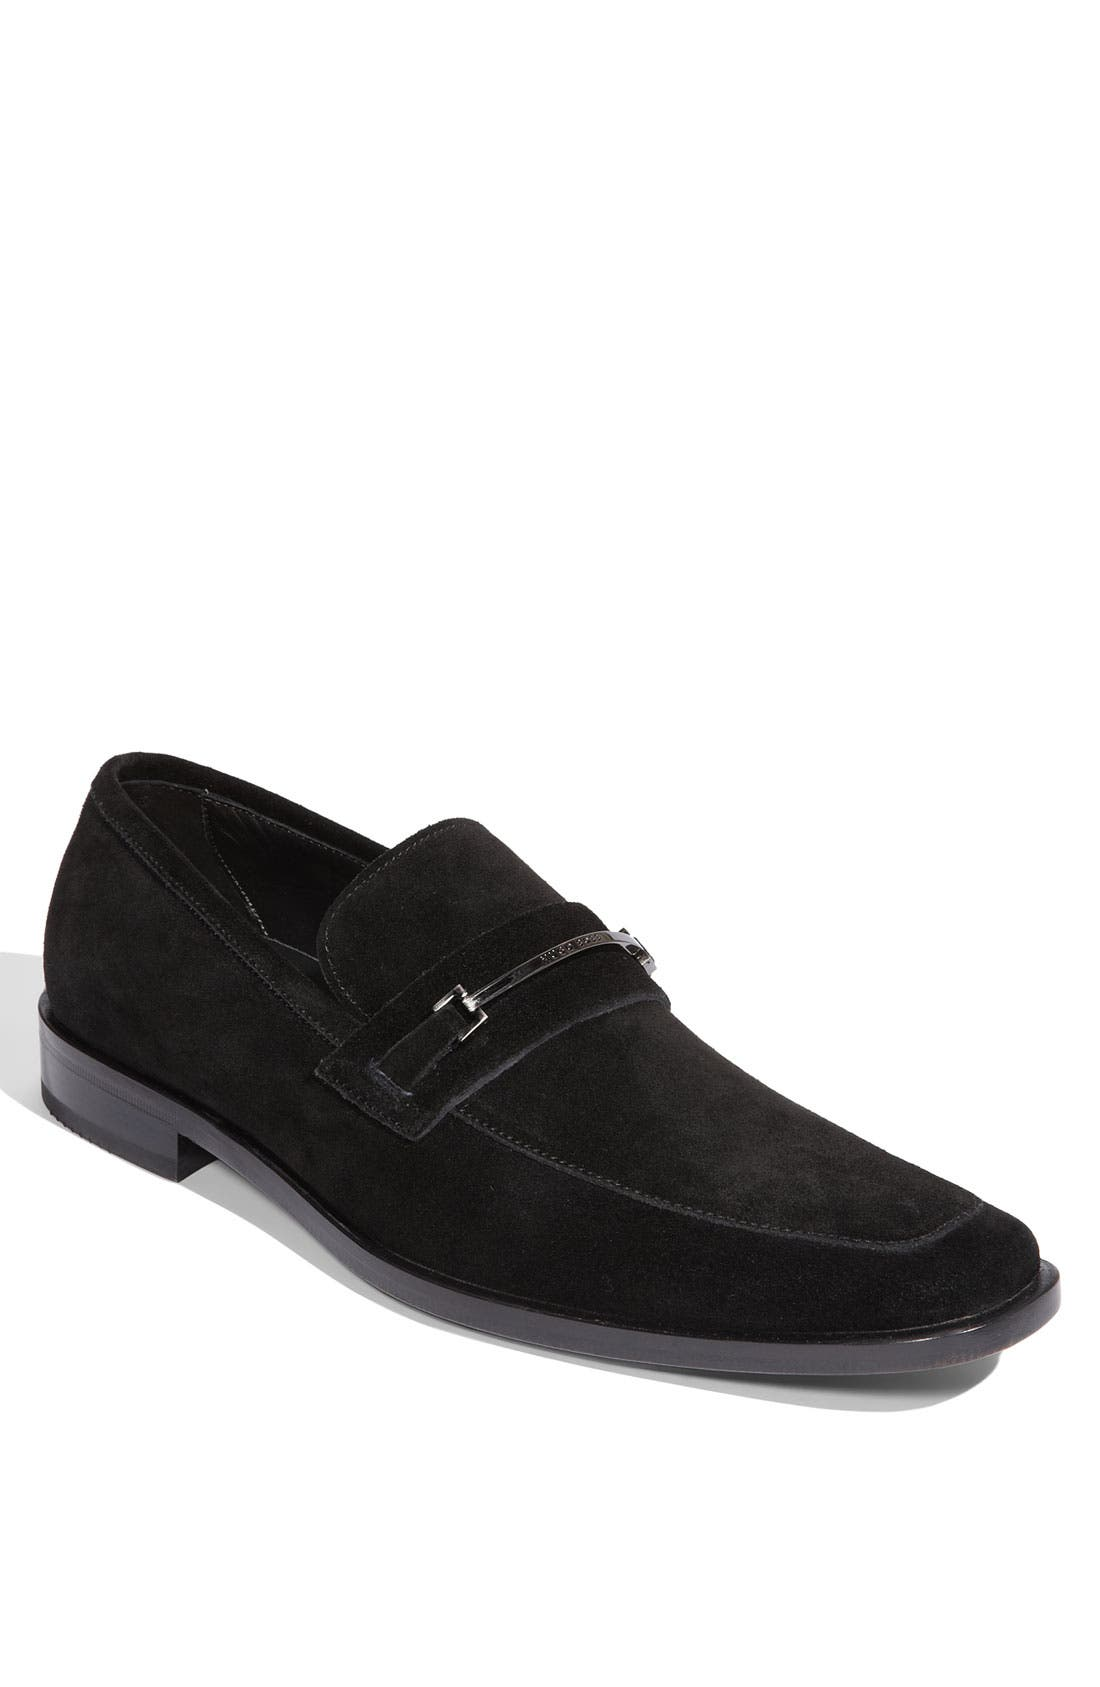 Main Image - BOSS Black 'Carl' Loafer (Men)